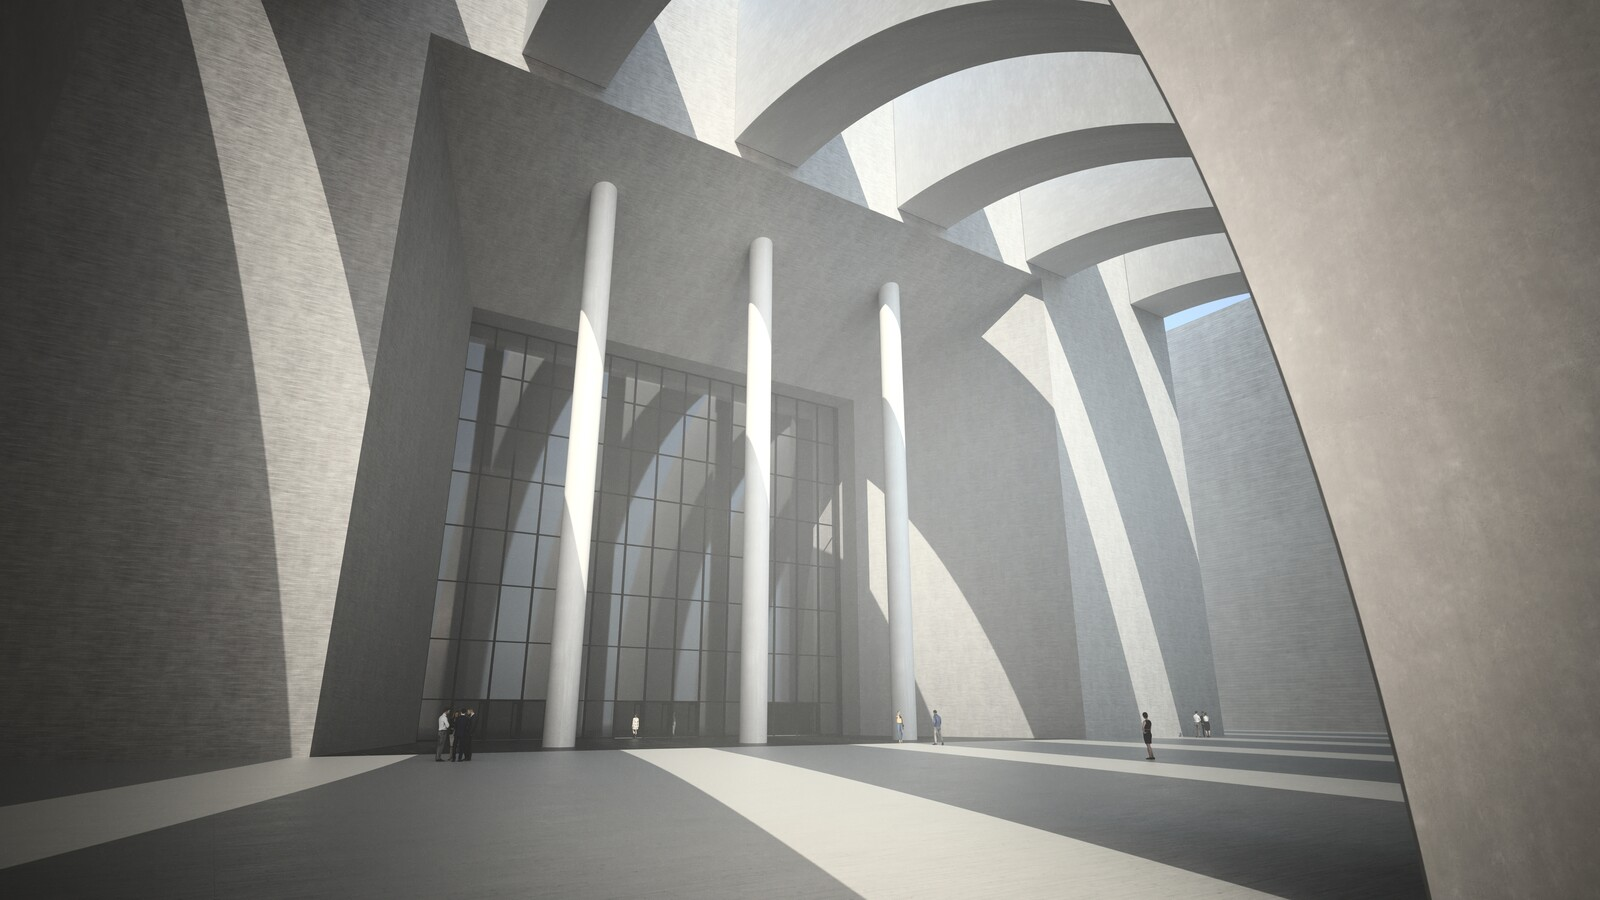 SketchUp 2019 + Thea Render  Large Hall Main Entry_SU8 2018-Scene 7 B Emitter 3840x2160 43m48s 1024 sp 01 D Optura981114crf